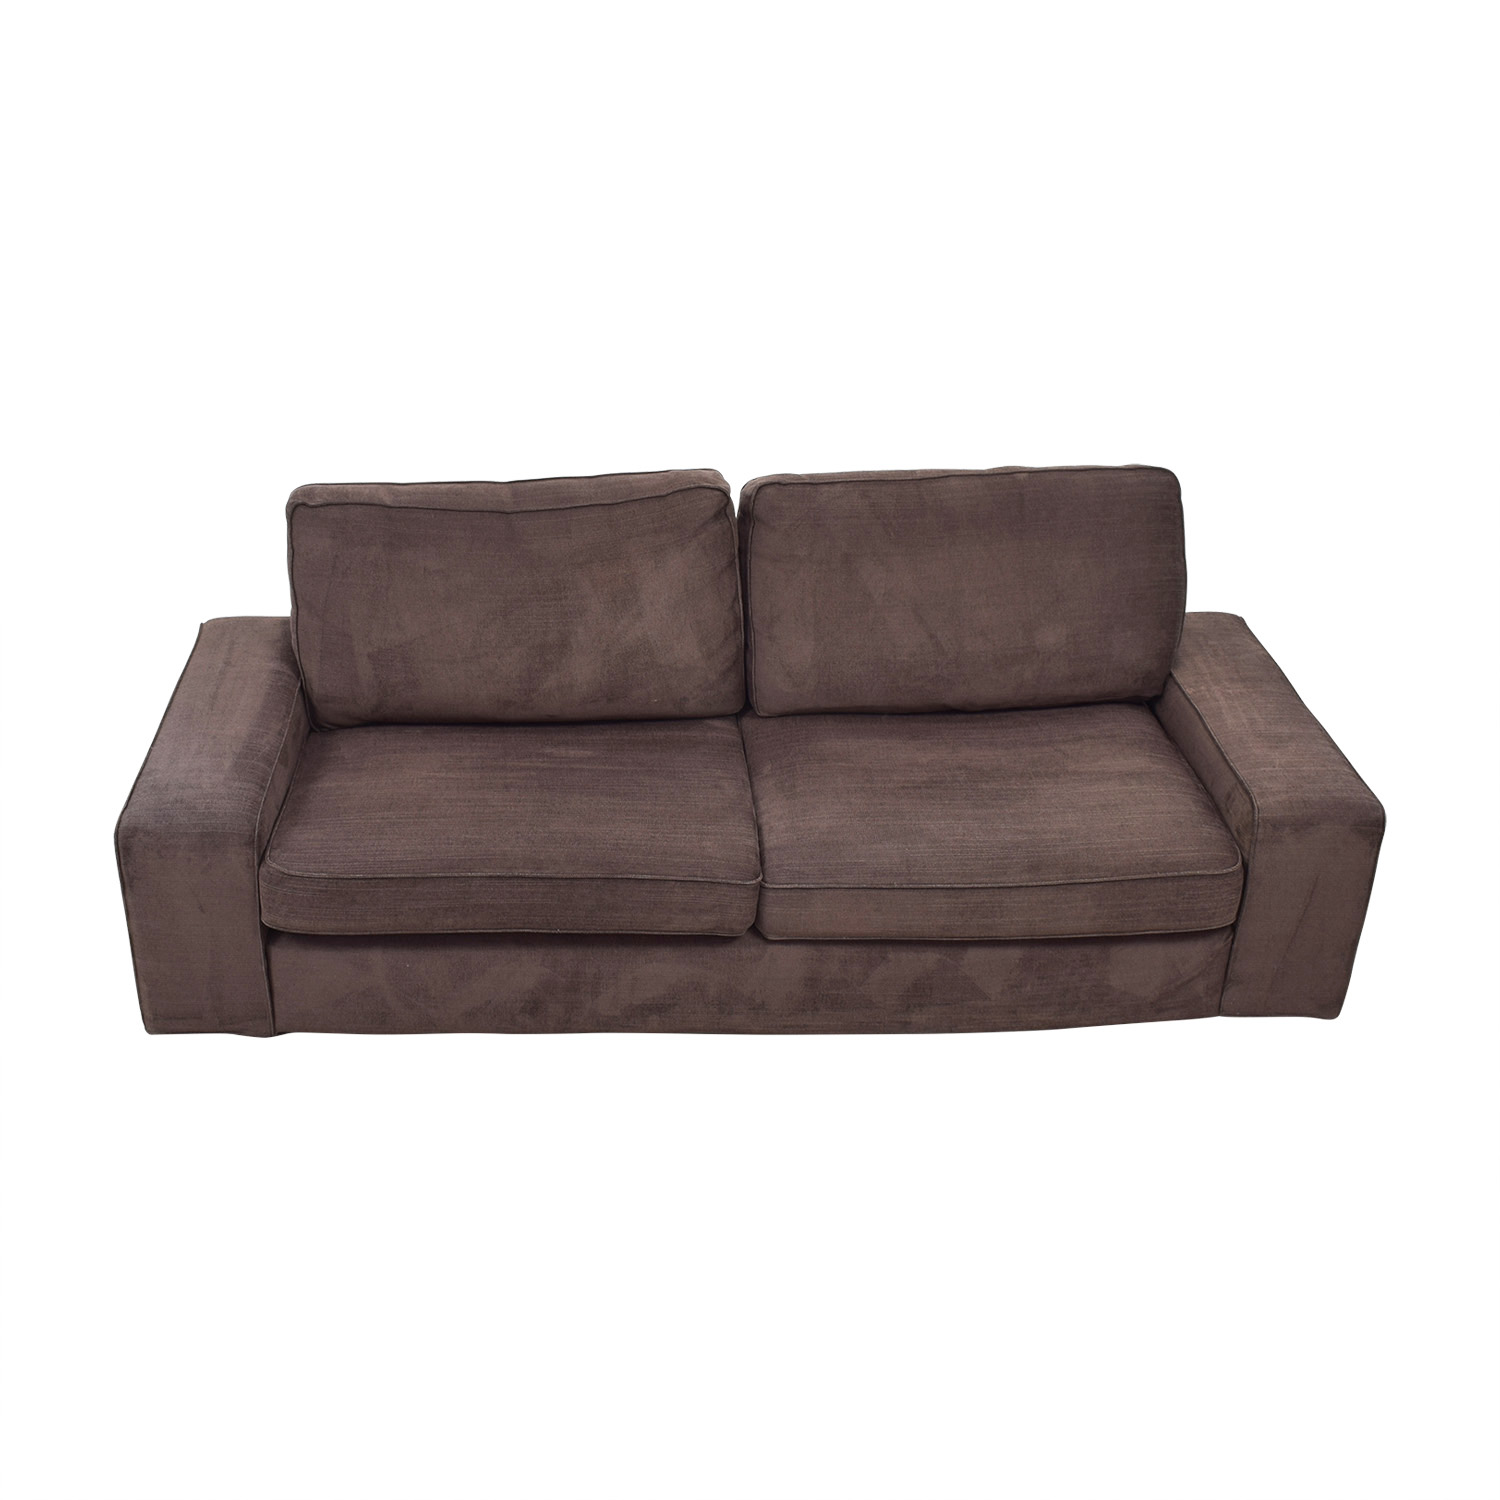 buy IKEA IKEA Kivik Brown Two-Cushion Sofa online